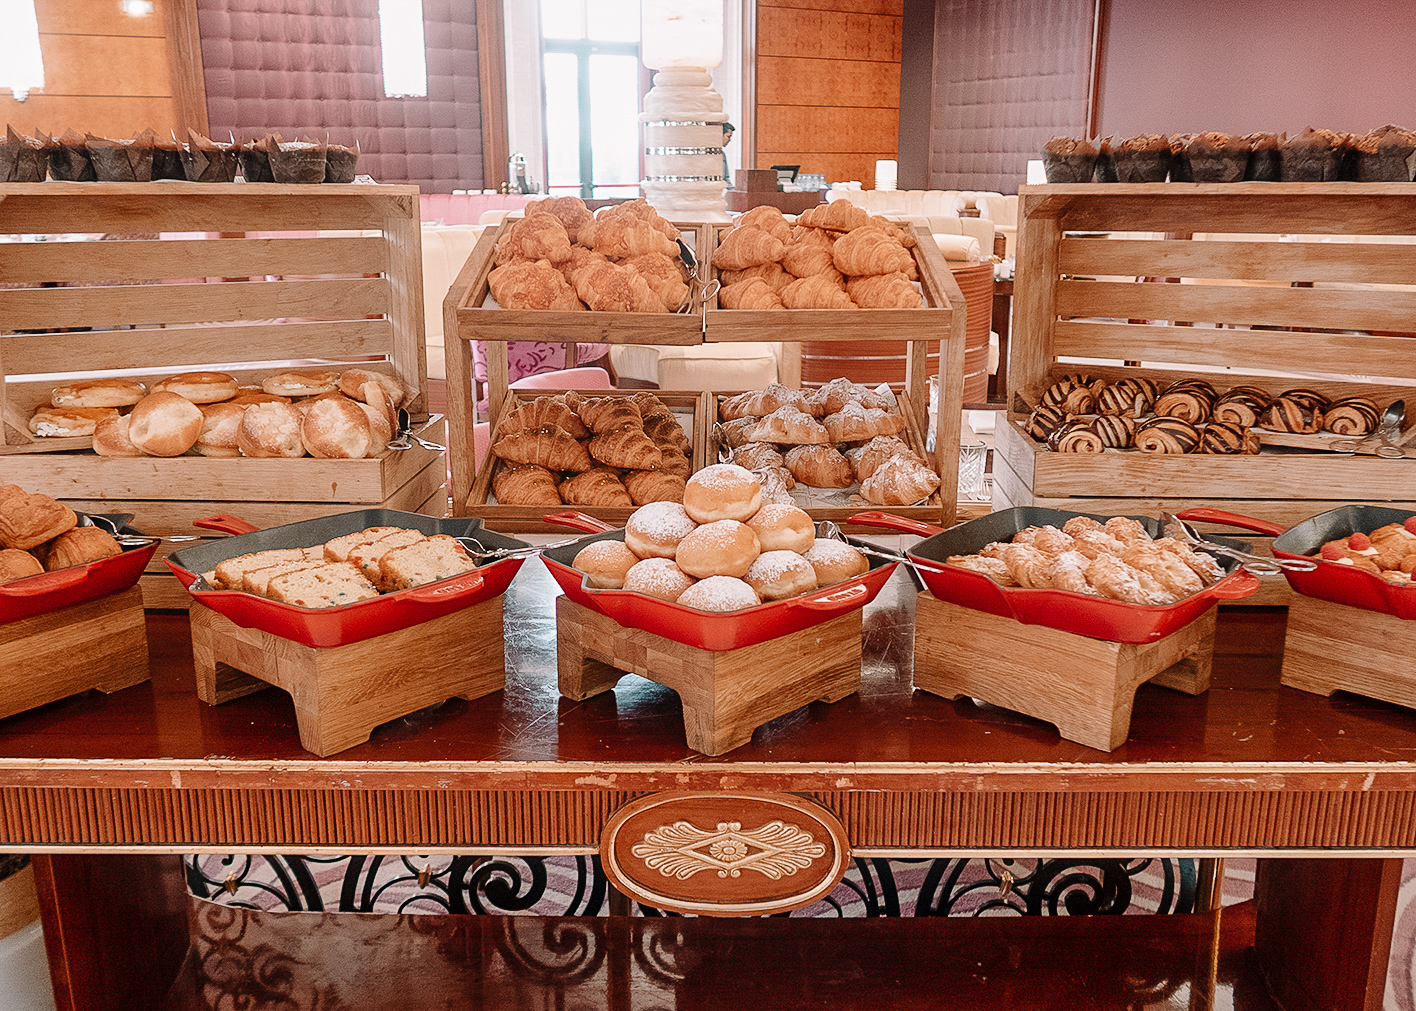 Pastries at Ritz Carlton Saudi Arabia